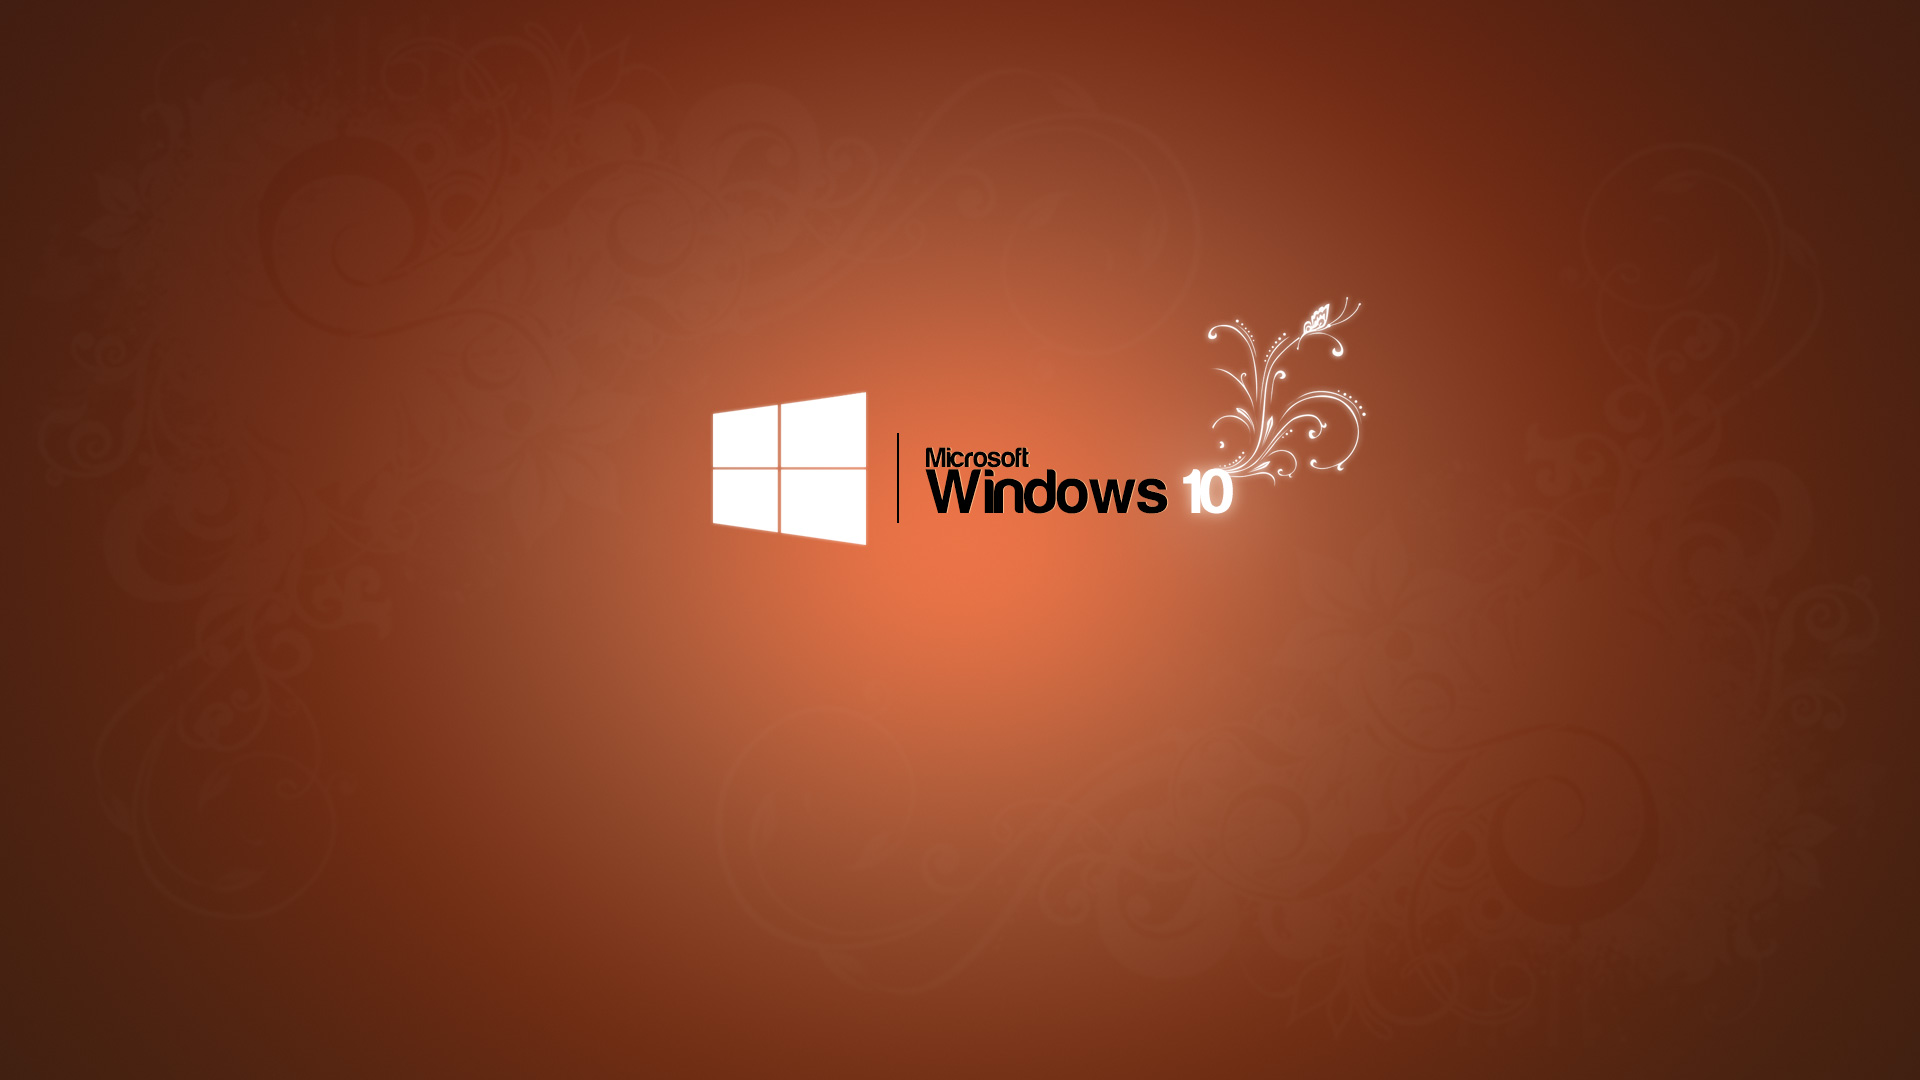 Windows 10 Wallpaper 1080p Full HD Logo